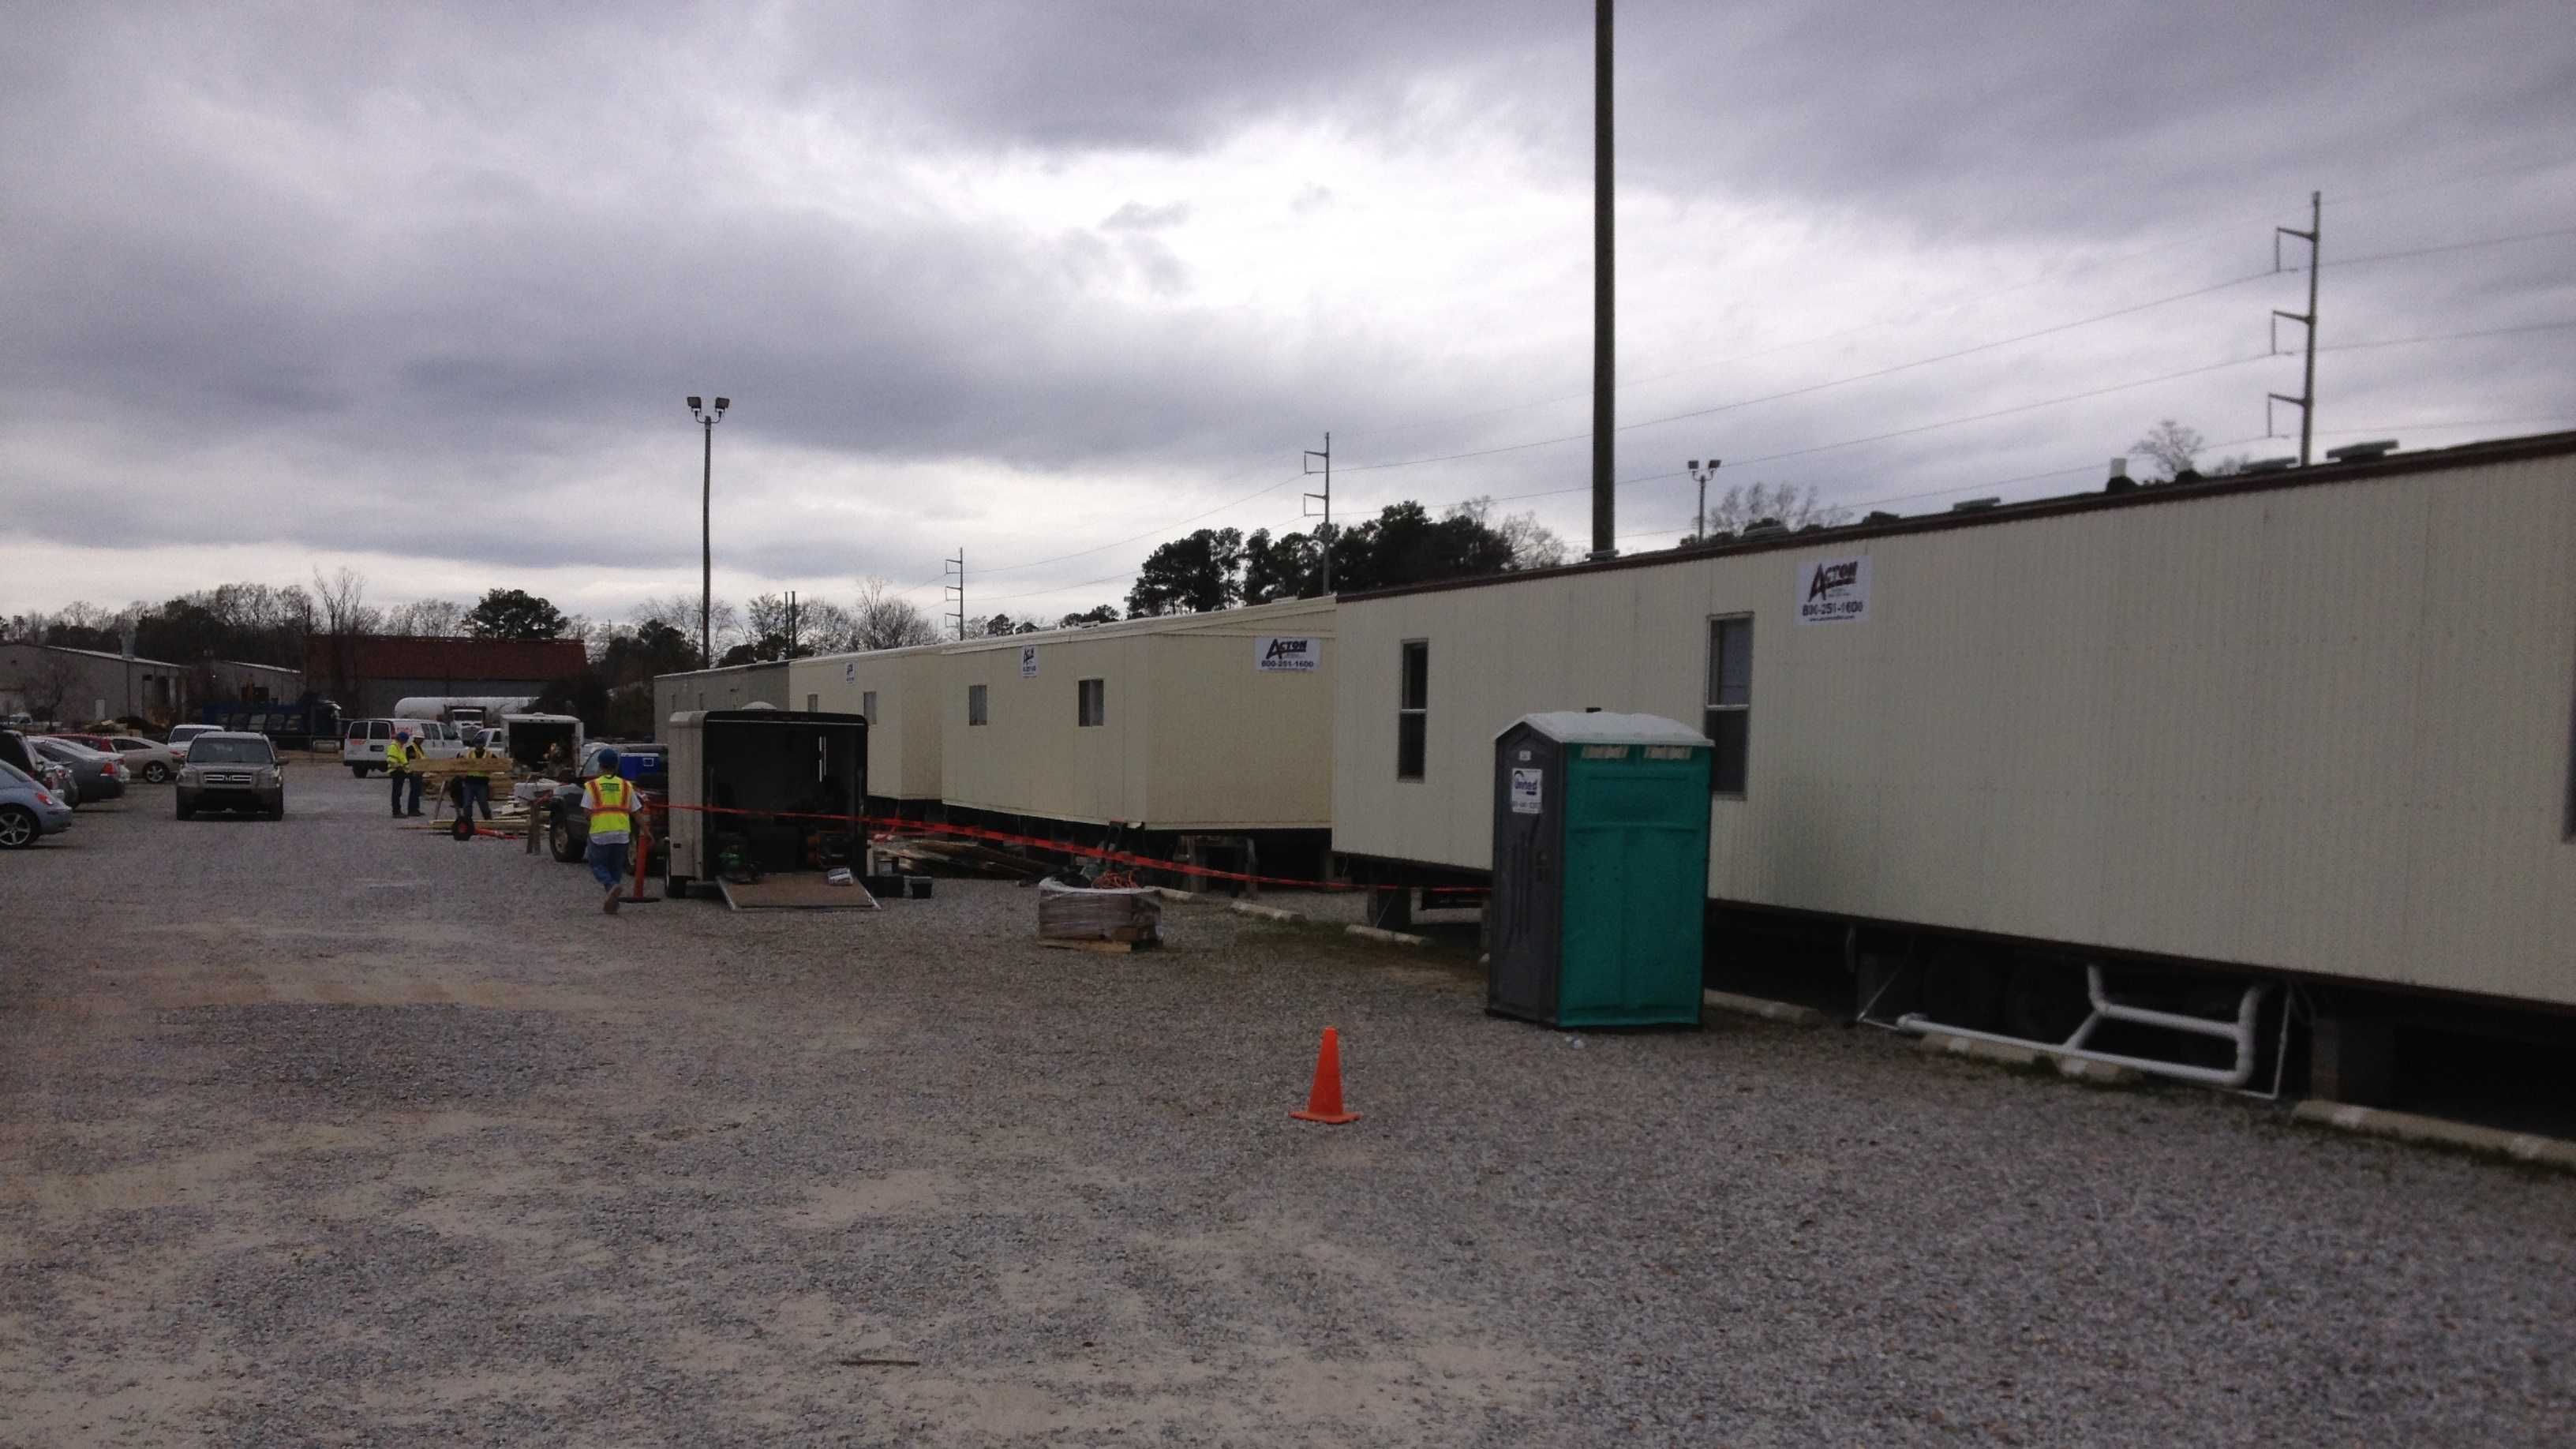 Mobile classrooms are going up at USM.